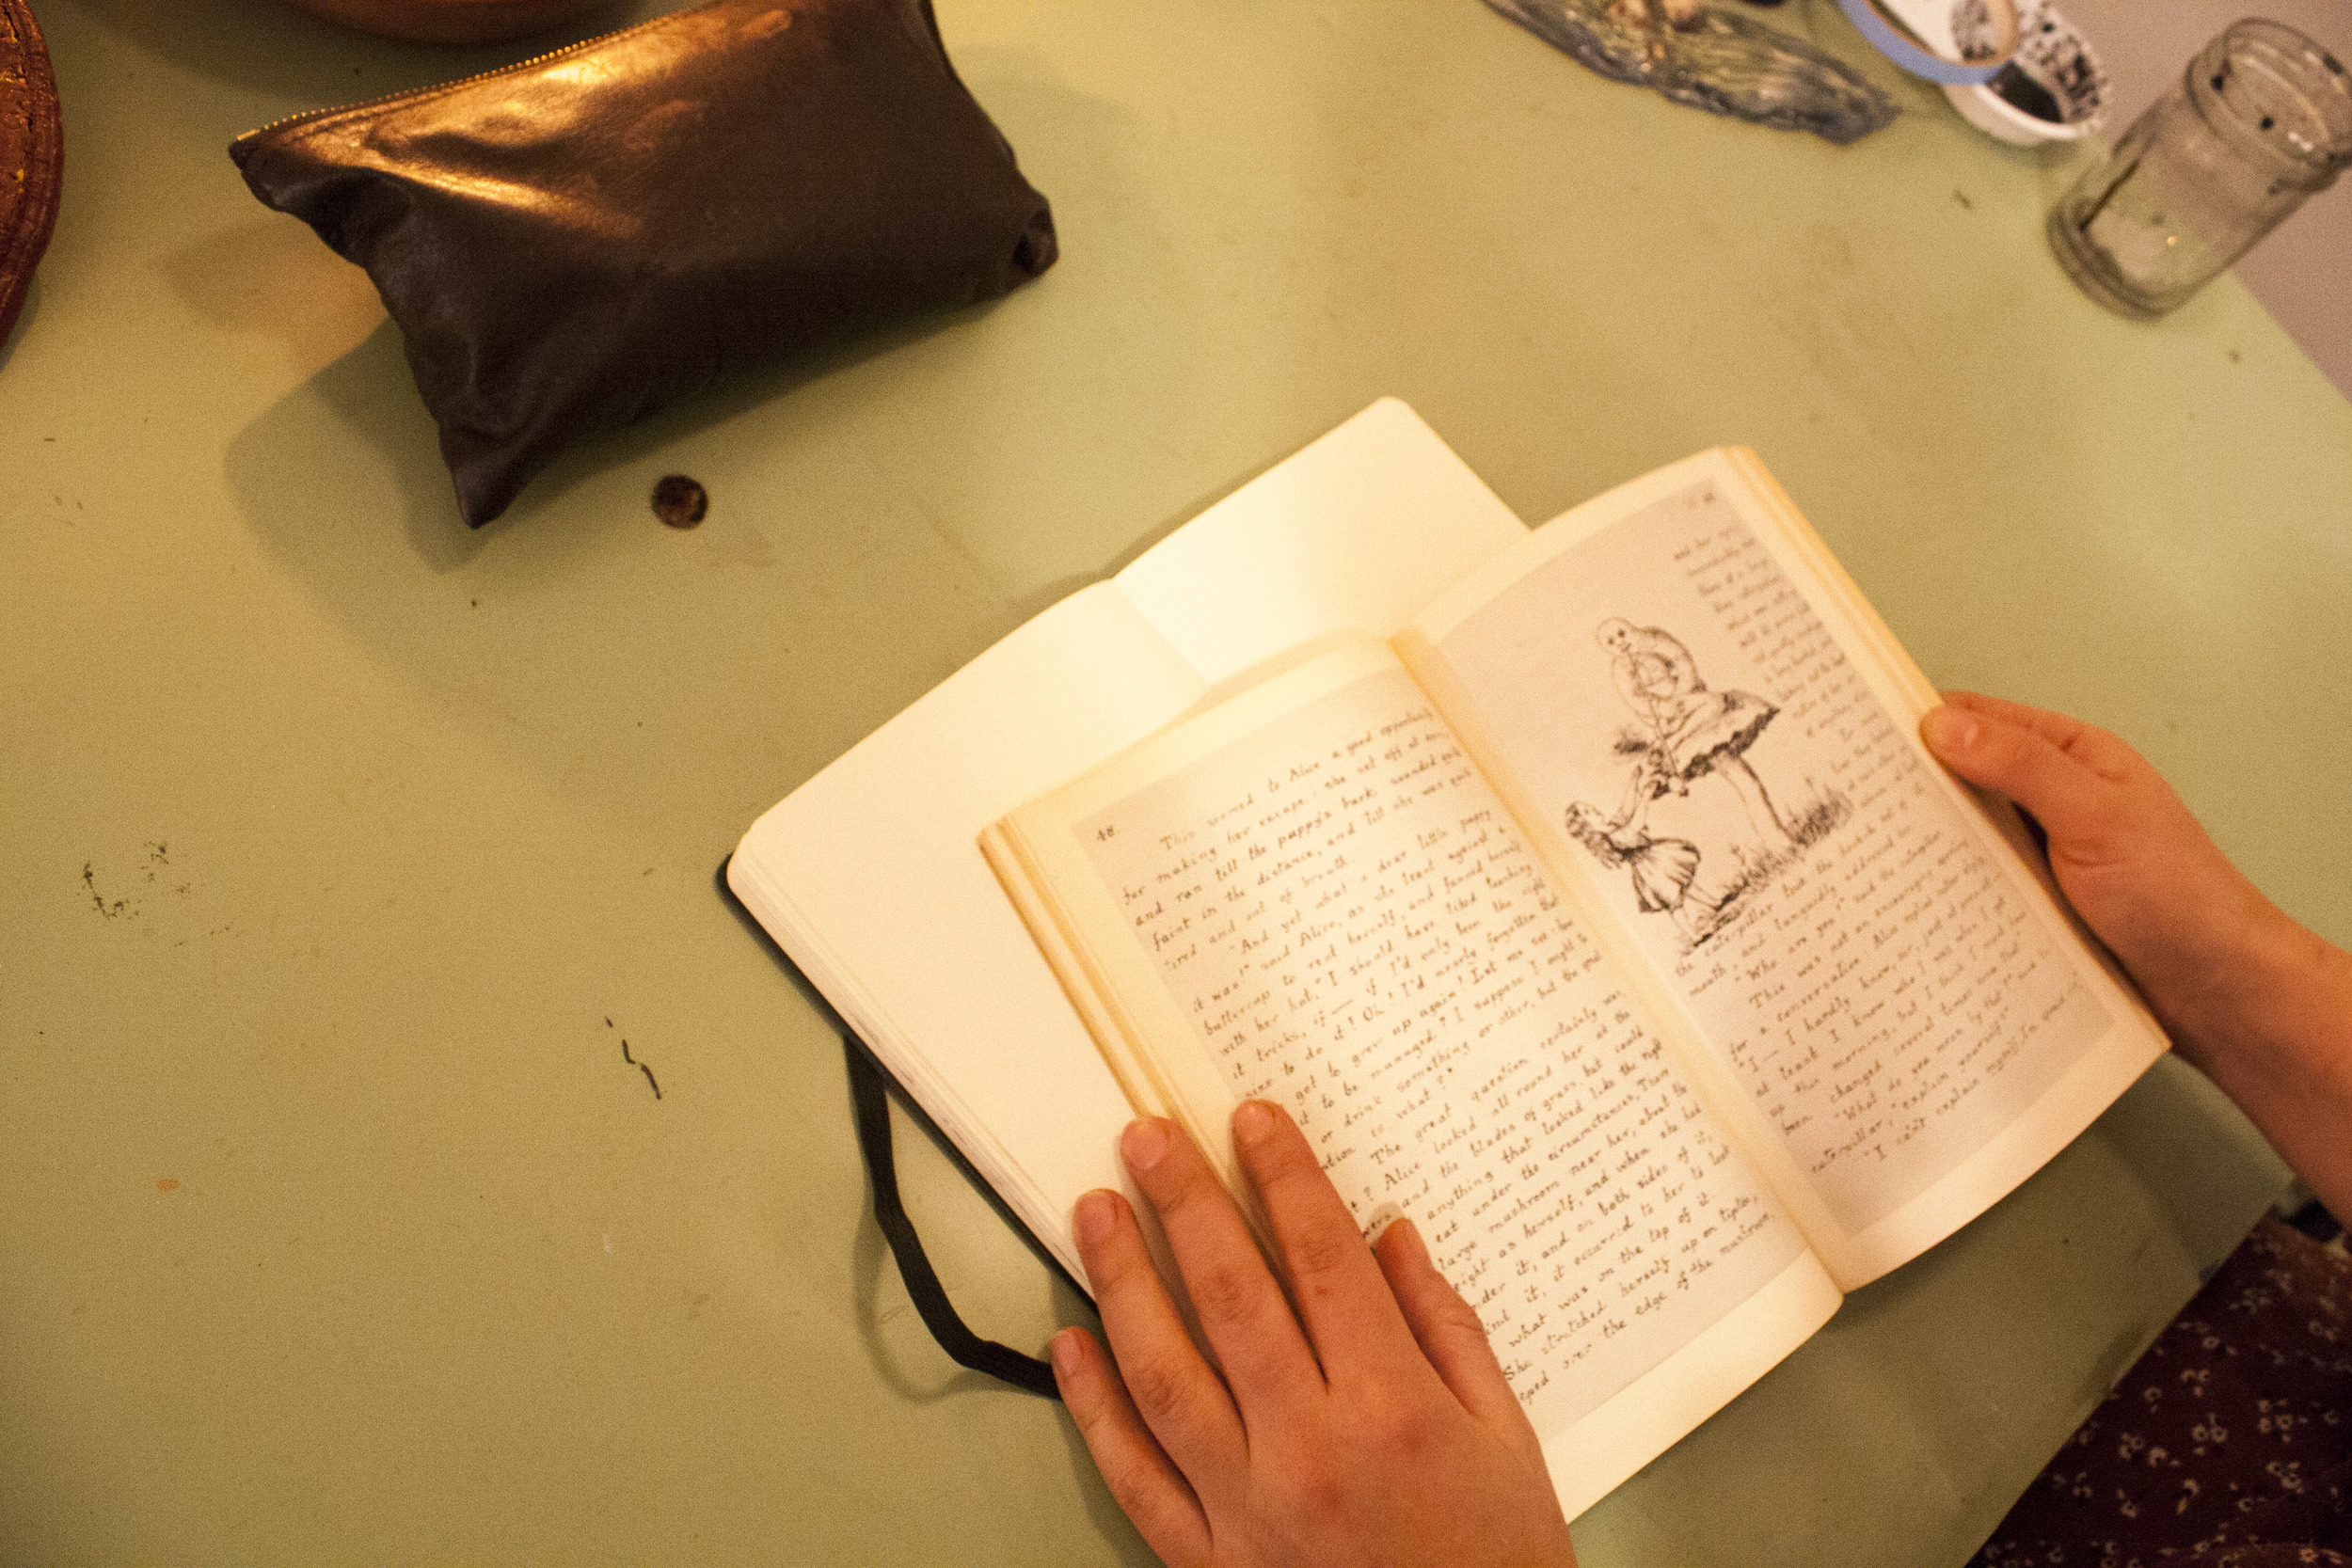 The pages of one of Juliana's most treasured books, Alice's adventures underground.